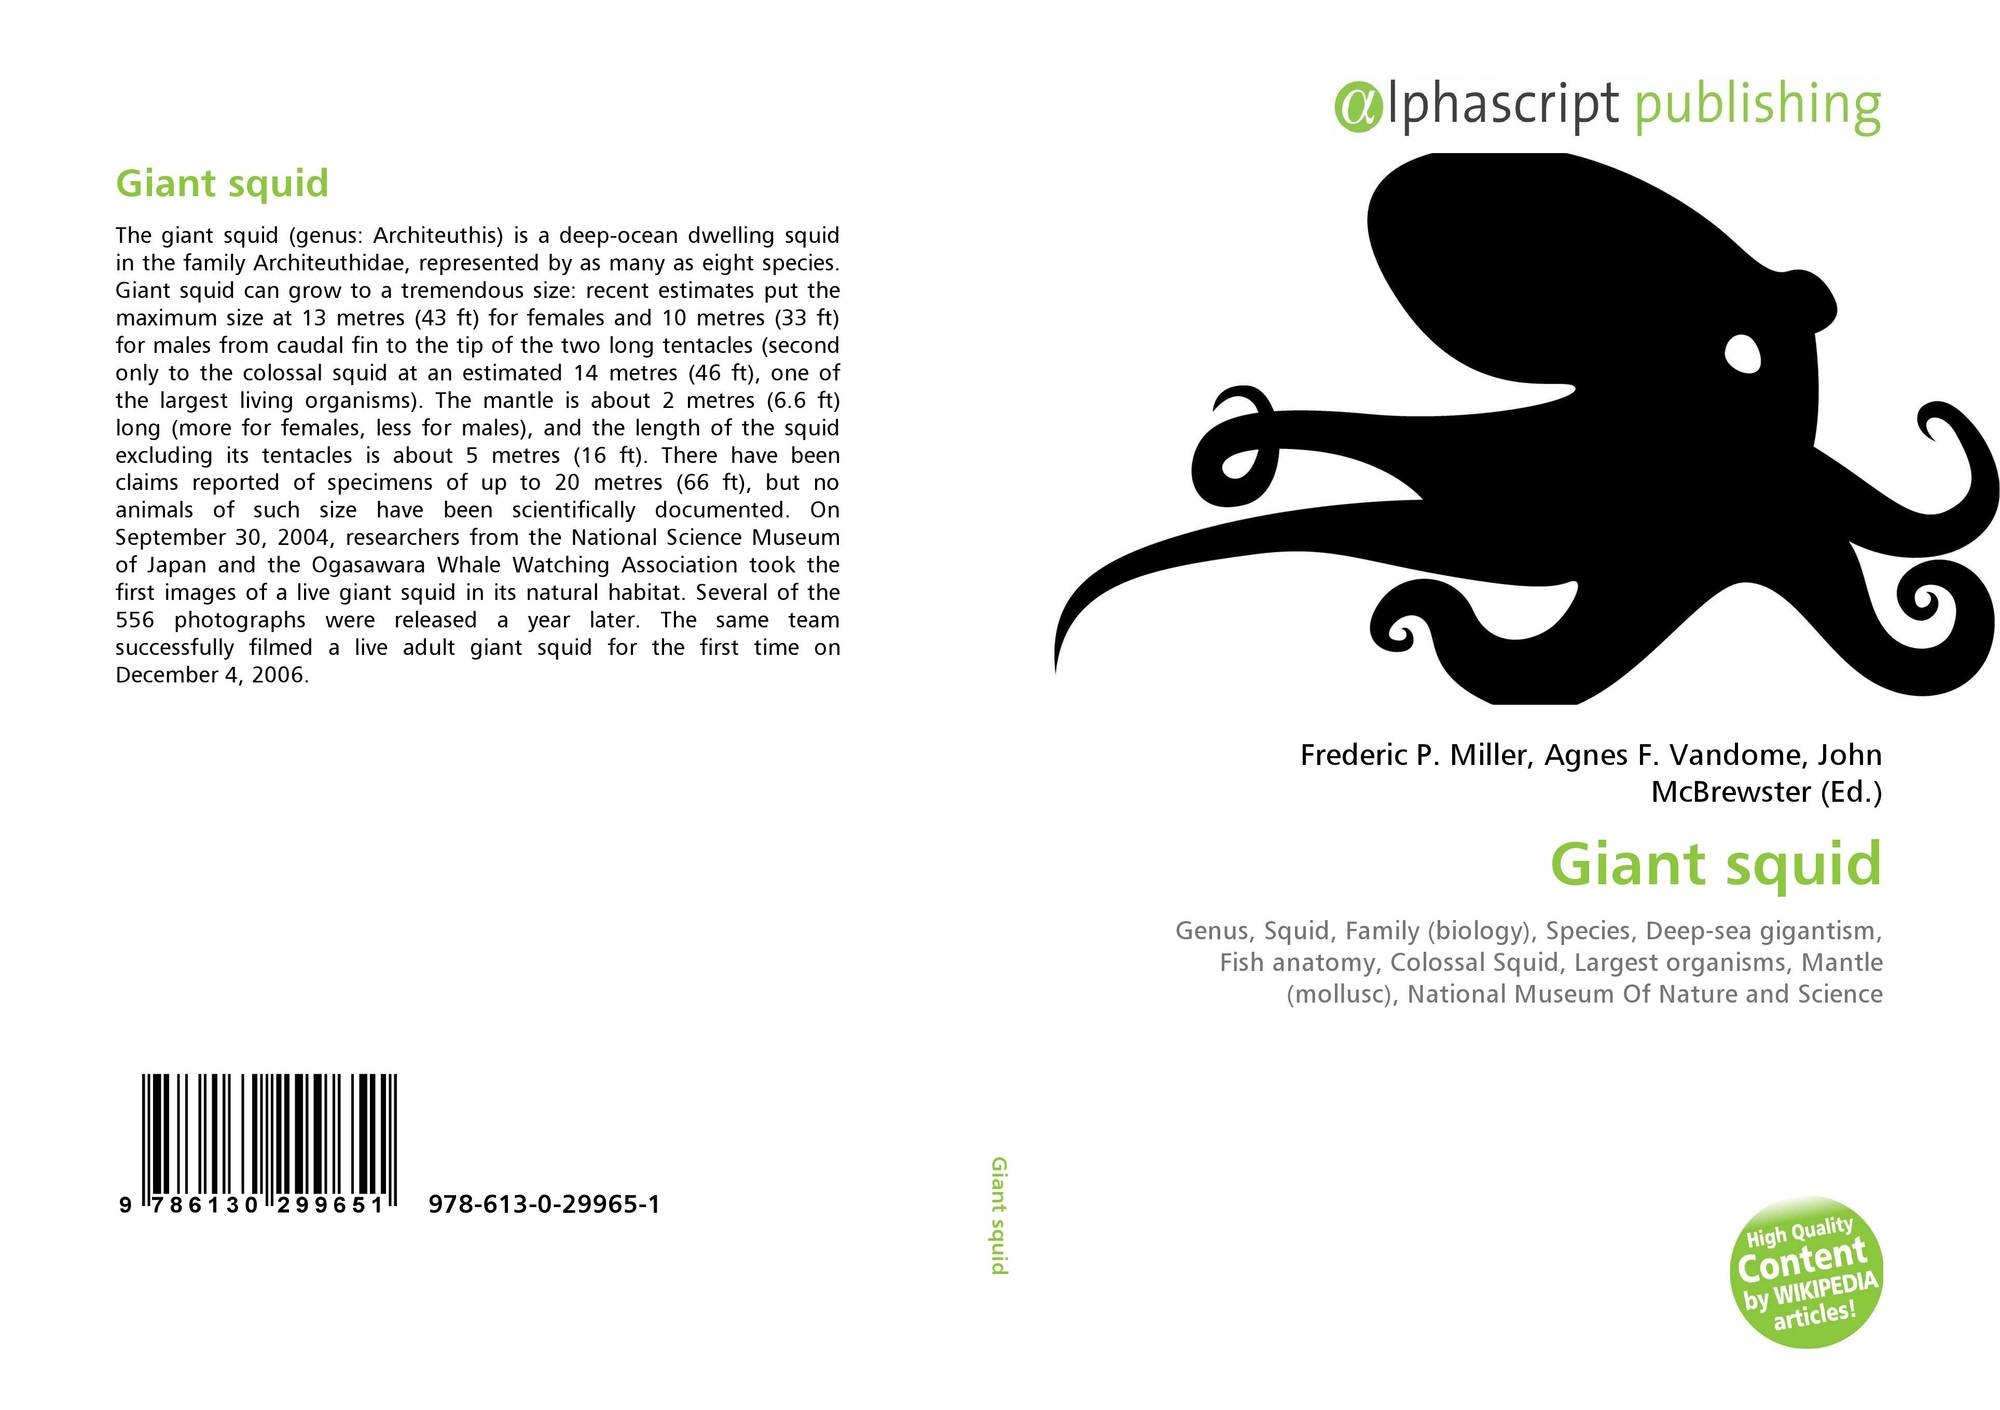 Giant squid, 978-613-0-29965-1, 6130299656 ,9786130299651